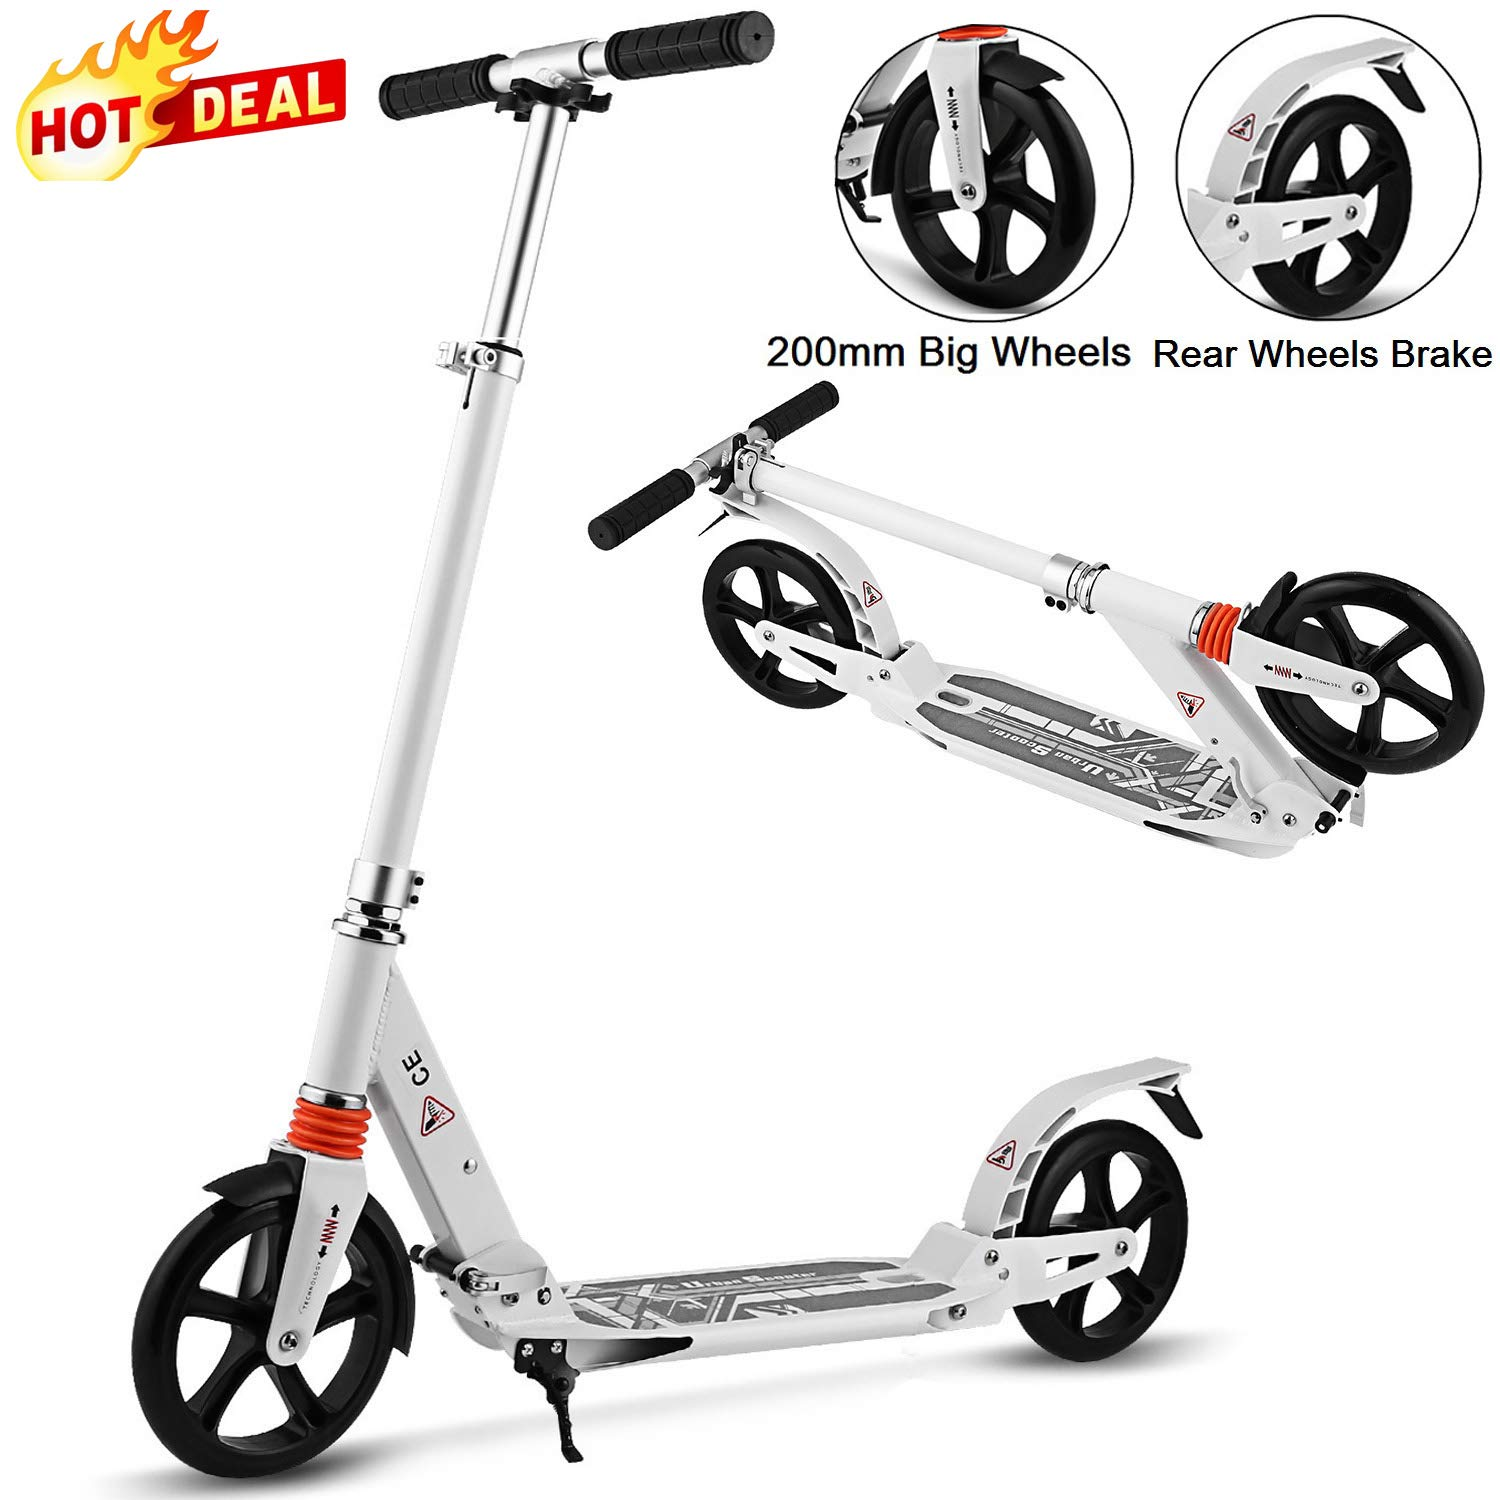 Aceshin Scooter for Adults/Teens/Kids, 200mm Big Wheels Scooter Easy Folding Lightweight Height Adjustable Rear Fender Brake Scooter Support 220lbs (White) by Aceshin